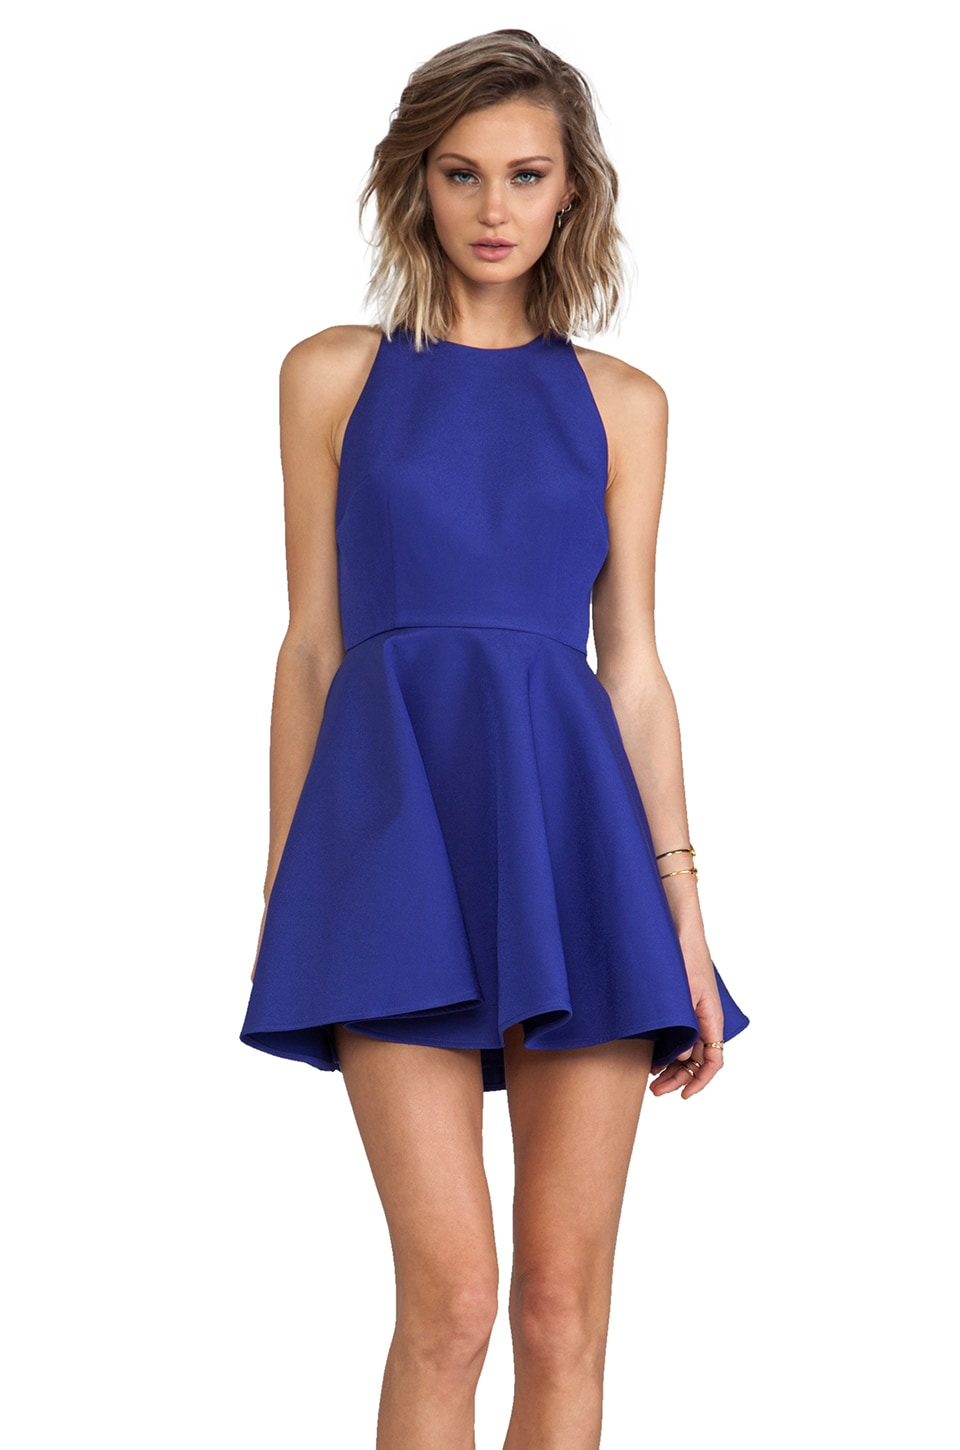 keepsake The Echo Dress in Ultramarine